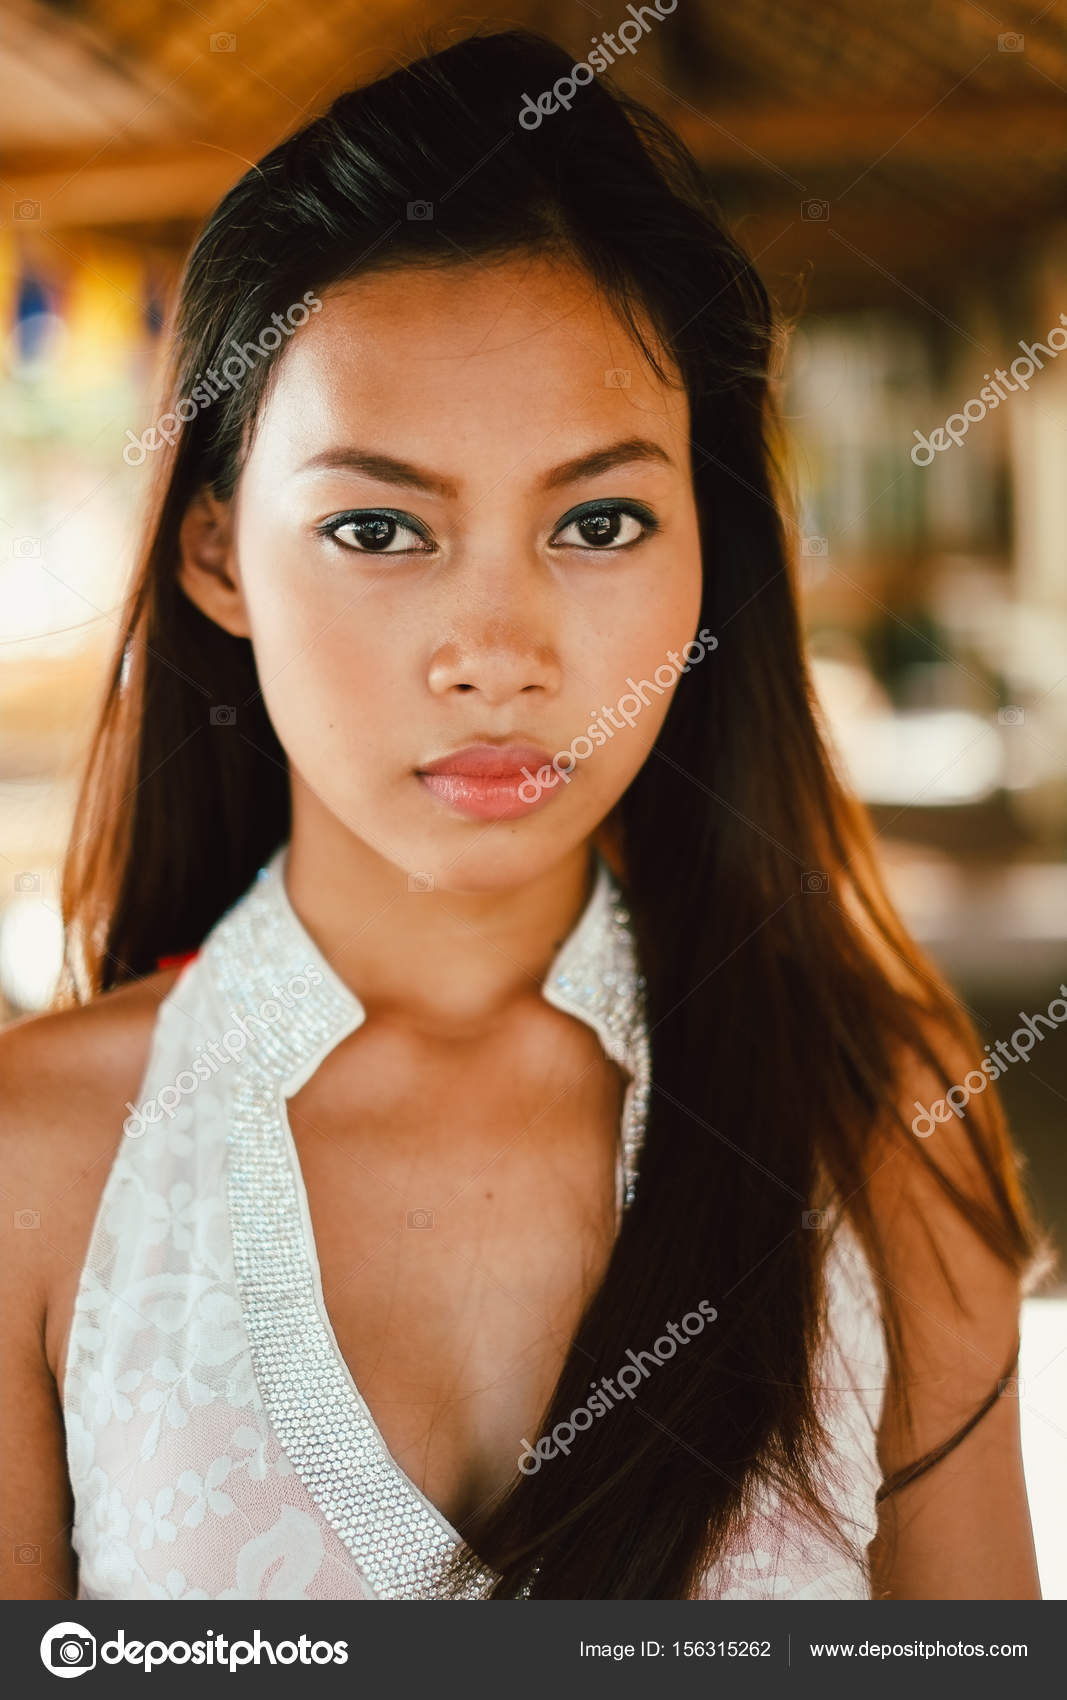 Apologise, pictures of asian female think